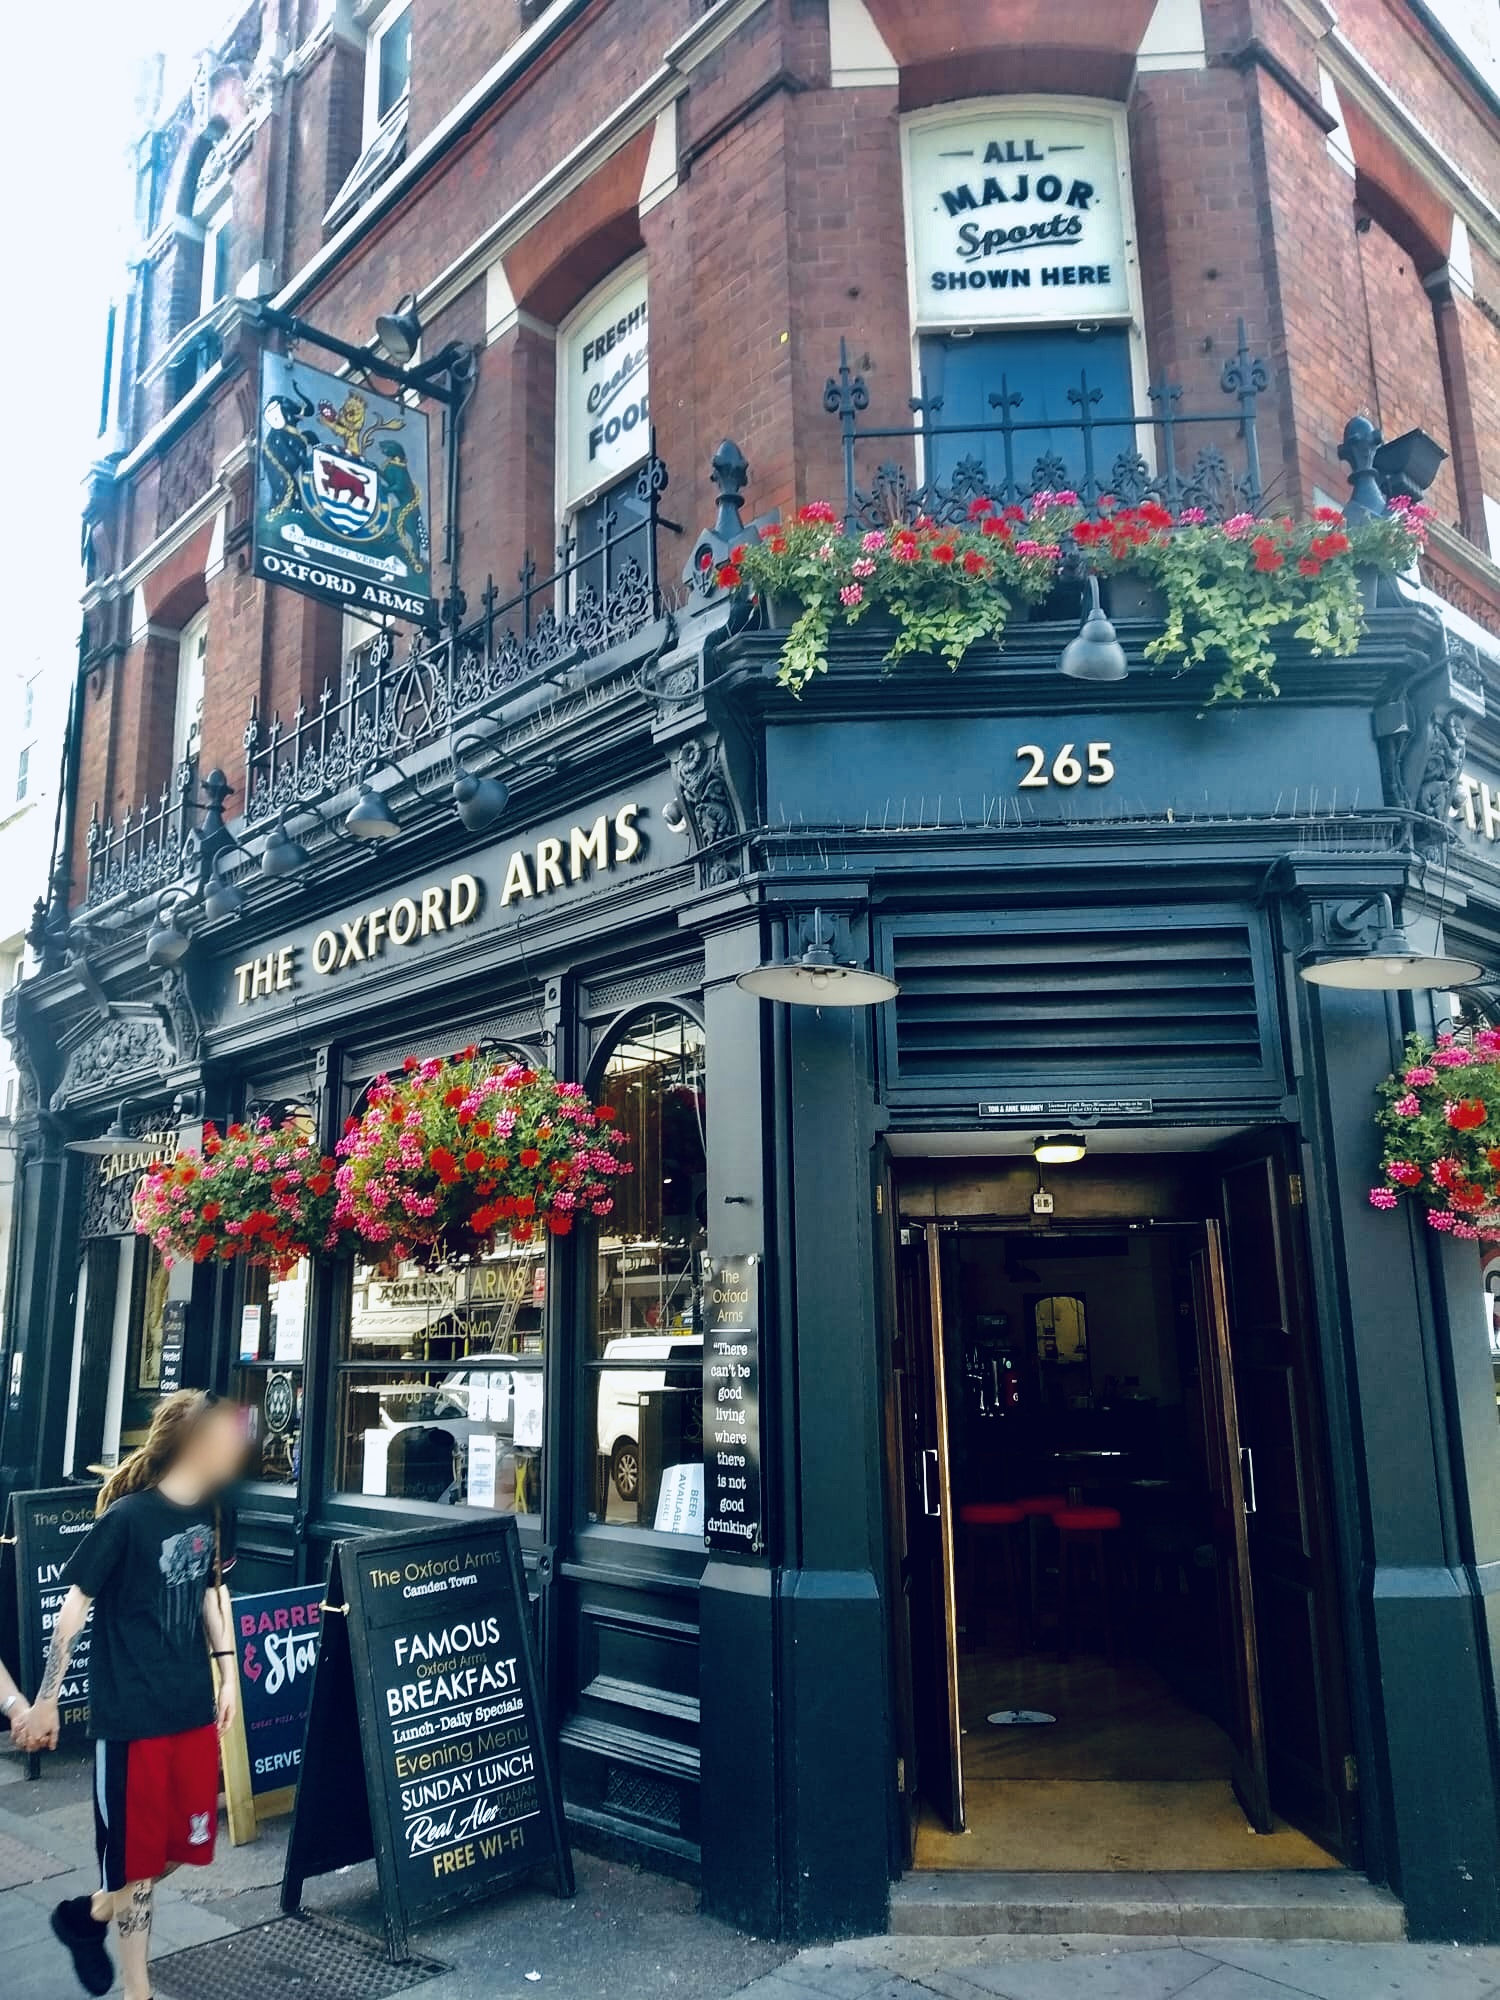 The Oxford Arms 265 Camden High St, London NW1 7BU - Photo by Il Calcio a Londra